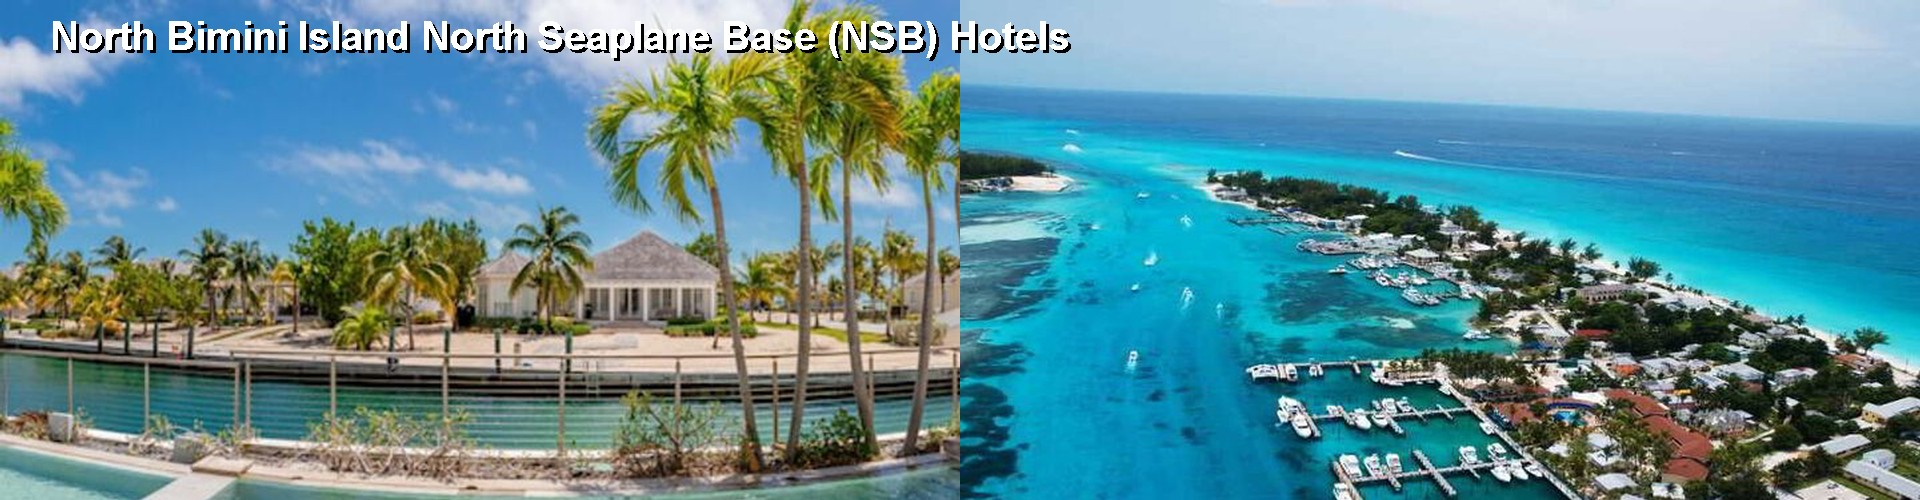 4 Best Hotels near North Bimini Island North Seaplane Base (NSB)